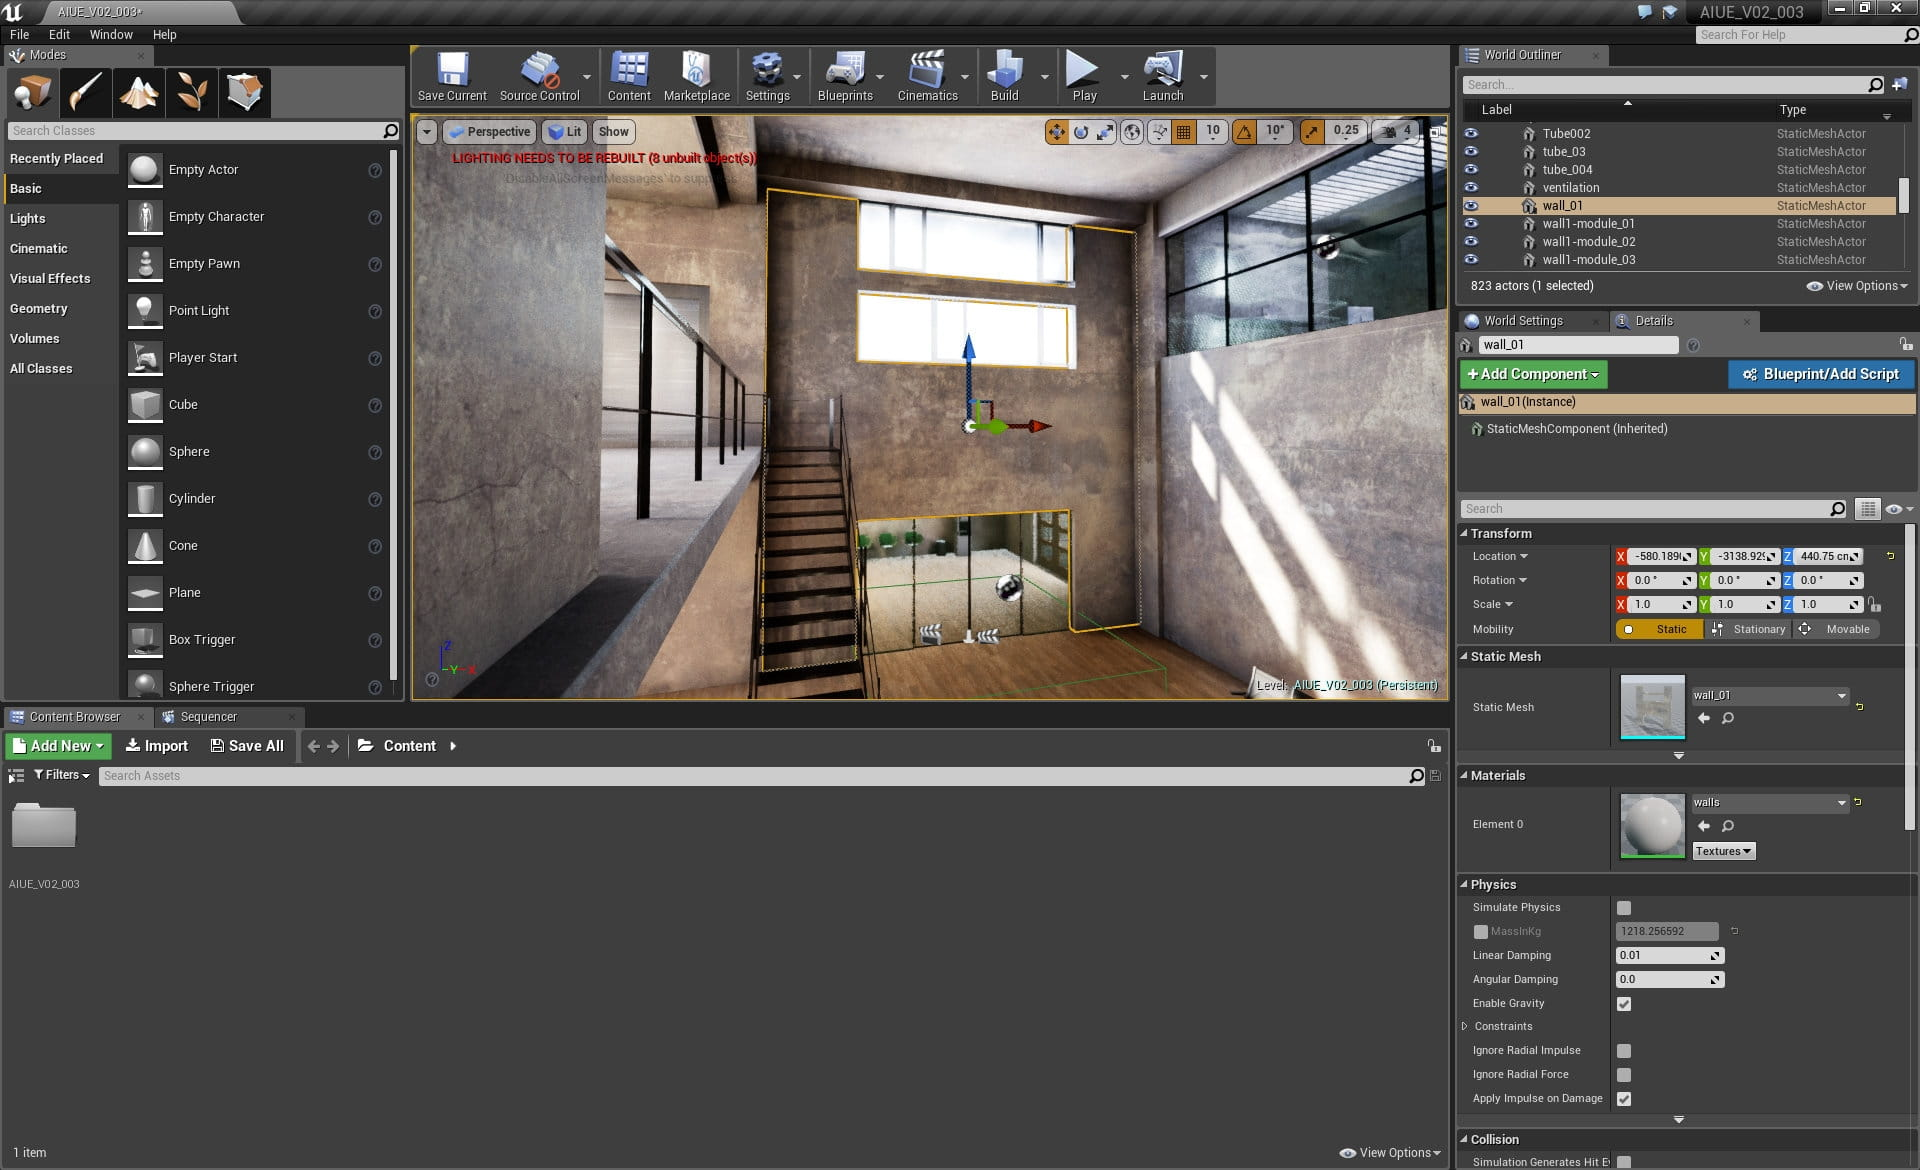 Making of Huge Loft in Unreal Engine - Tip of the Week - Evermotion